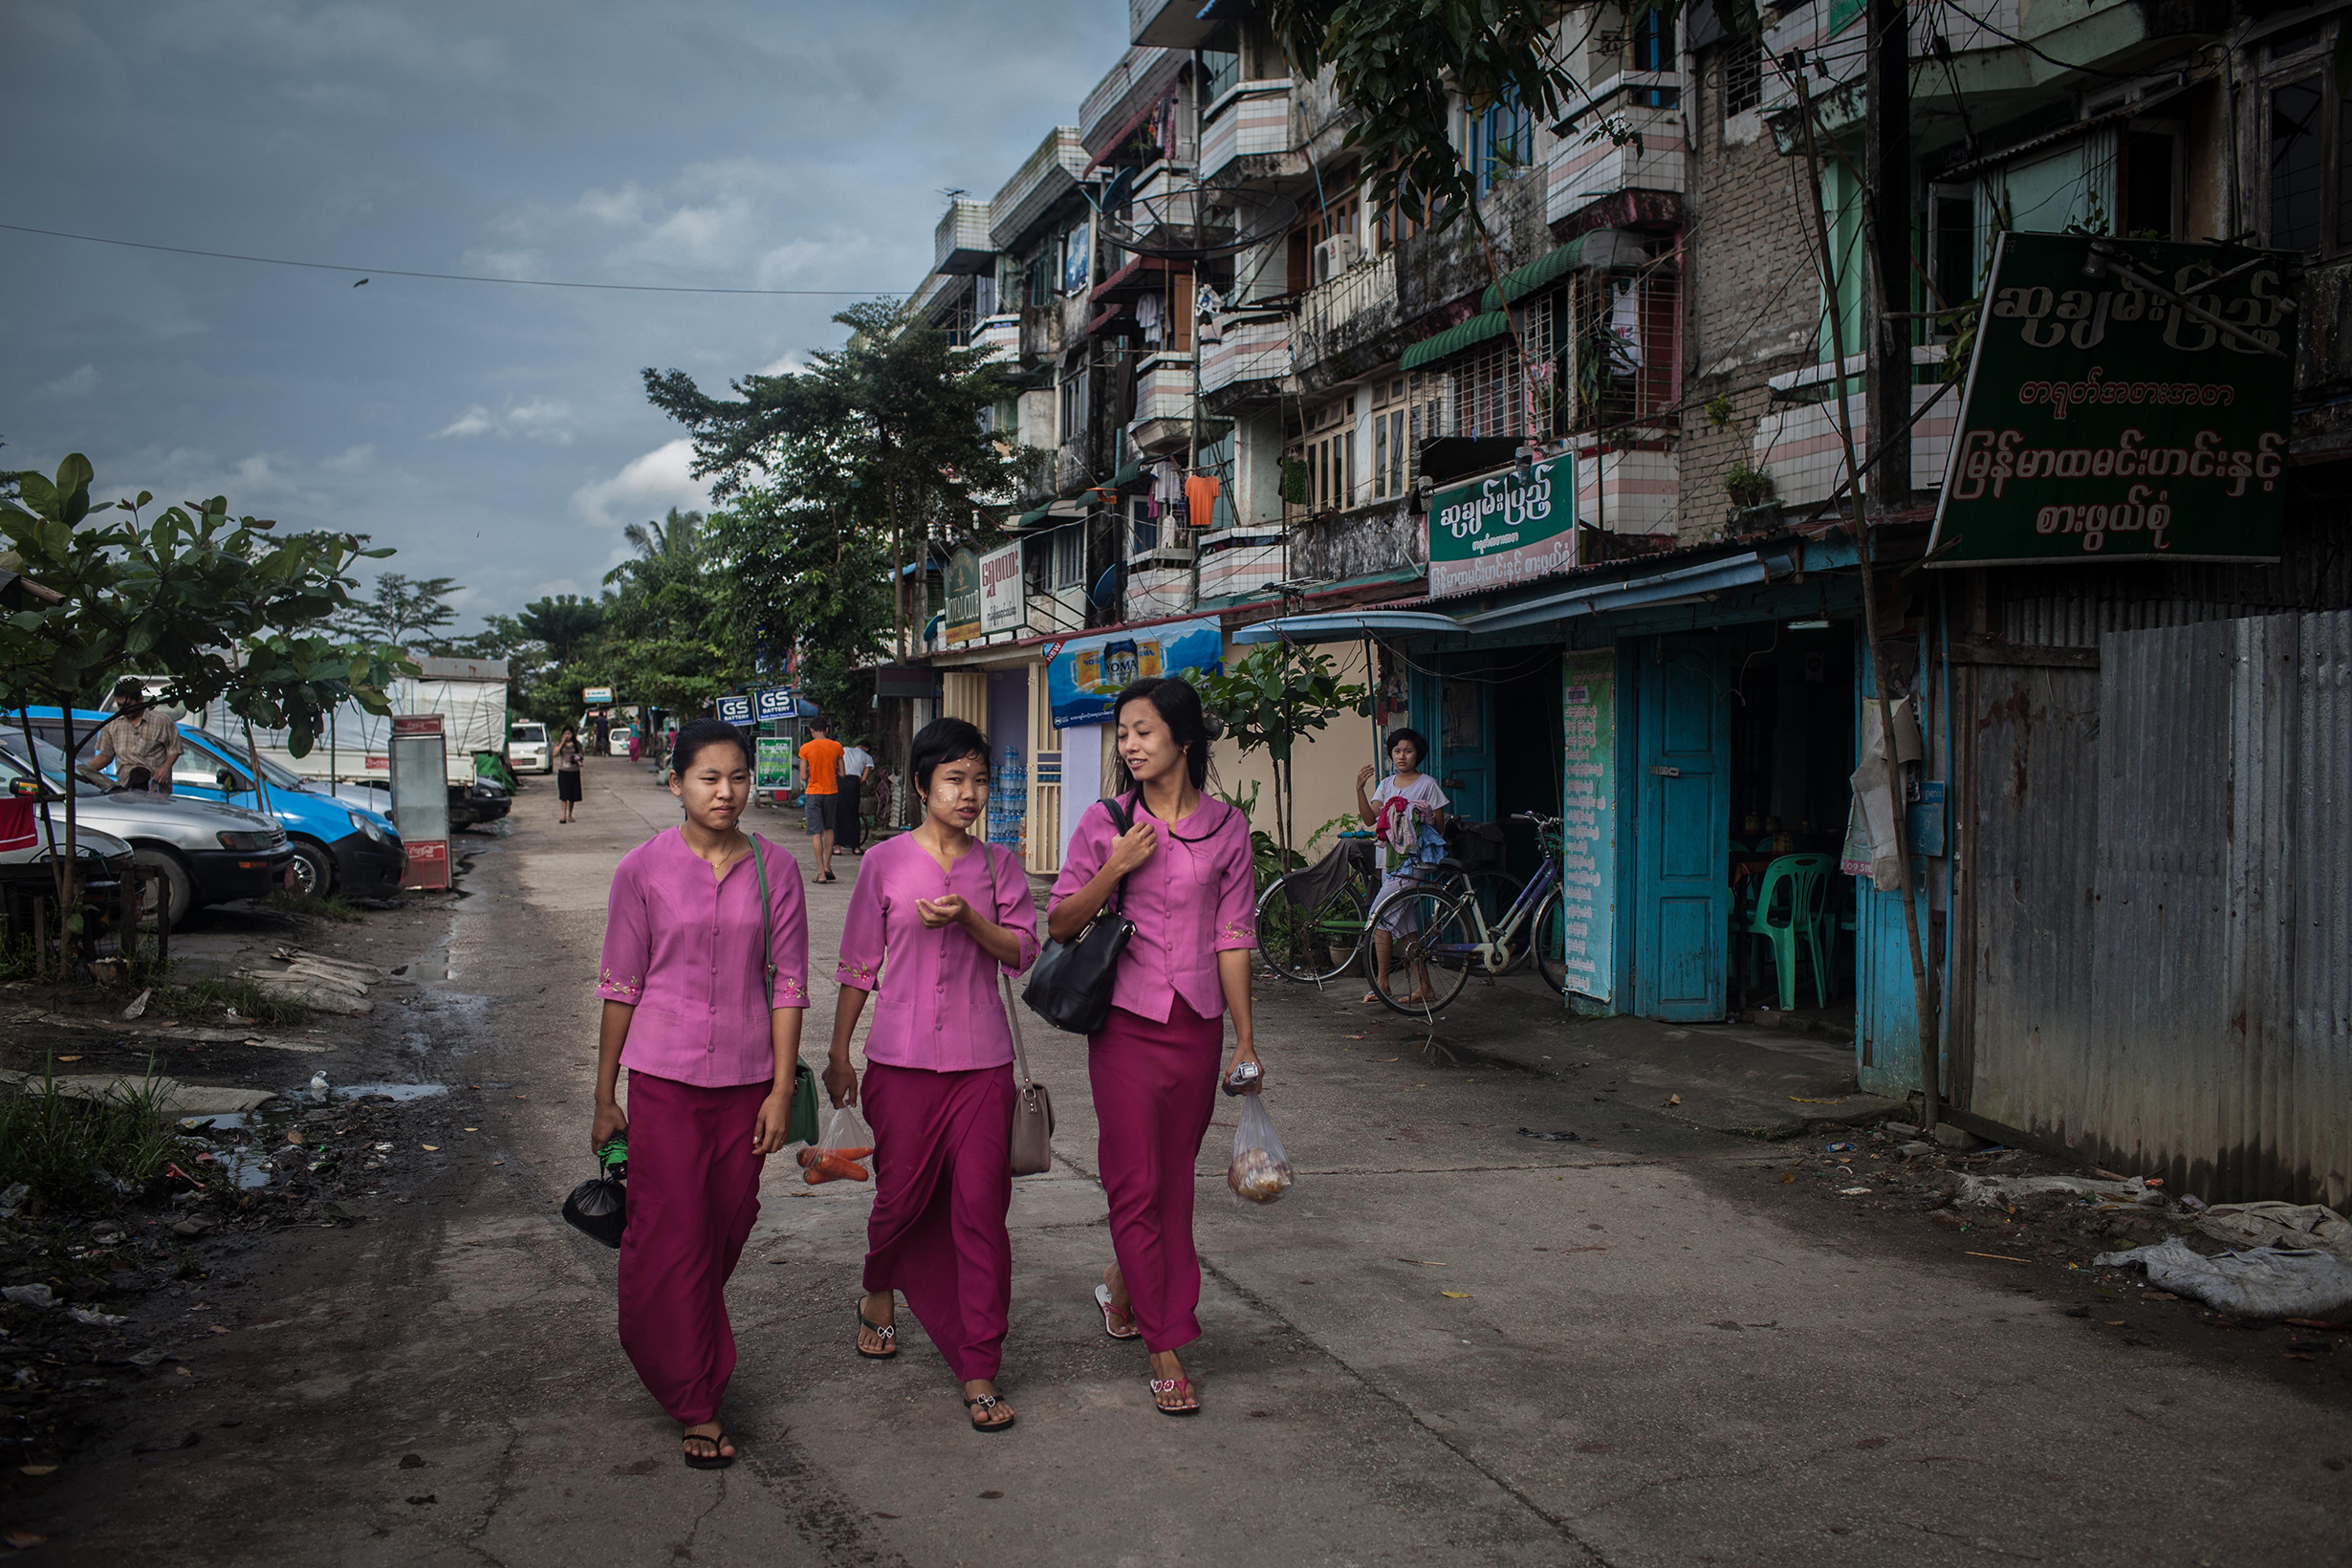 Garment factory workers walk to work from their dormitories on October 13, 2015. On August 29 2015, the government of Myanmar announced a minimum wage of 3,600 kyats (about 3 US$). This slight pay raise was met with hostilities by factory owners in the Garment Industries who either refused to increase pay at all, made layoffs to keep expenses the same or cut overtime pay and benefits. Even those garment factory workers who have seen a increase in their daily wages have seen very little change in their salaries overall.